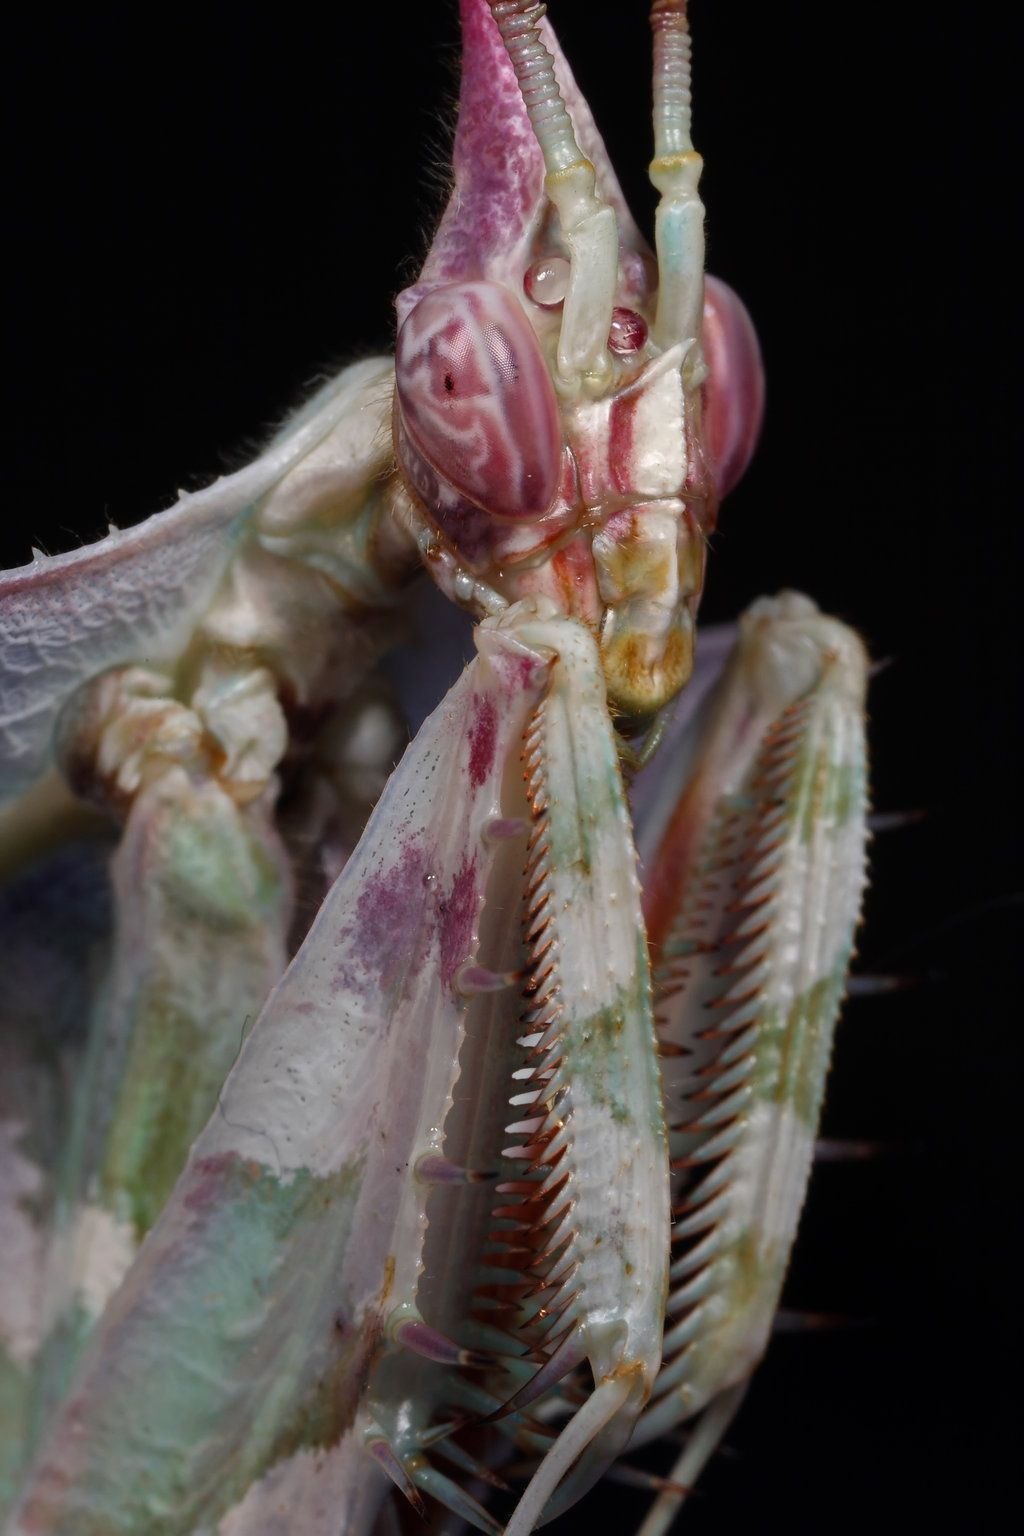 403 Forbidden Macro Photography Insects Incredible Creatures Praying Mantis